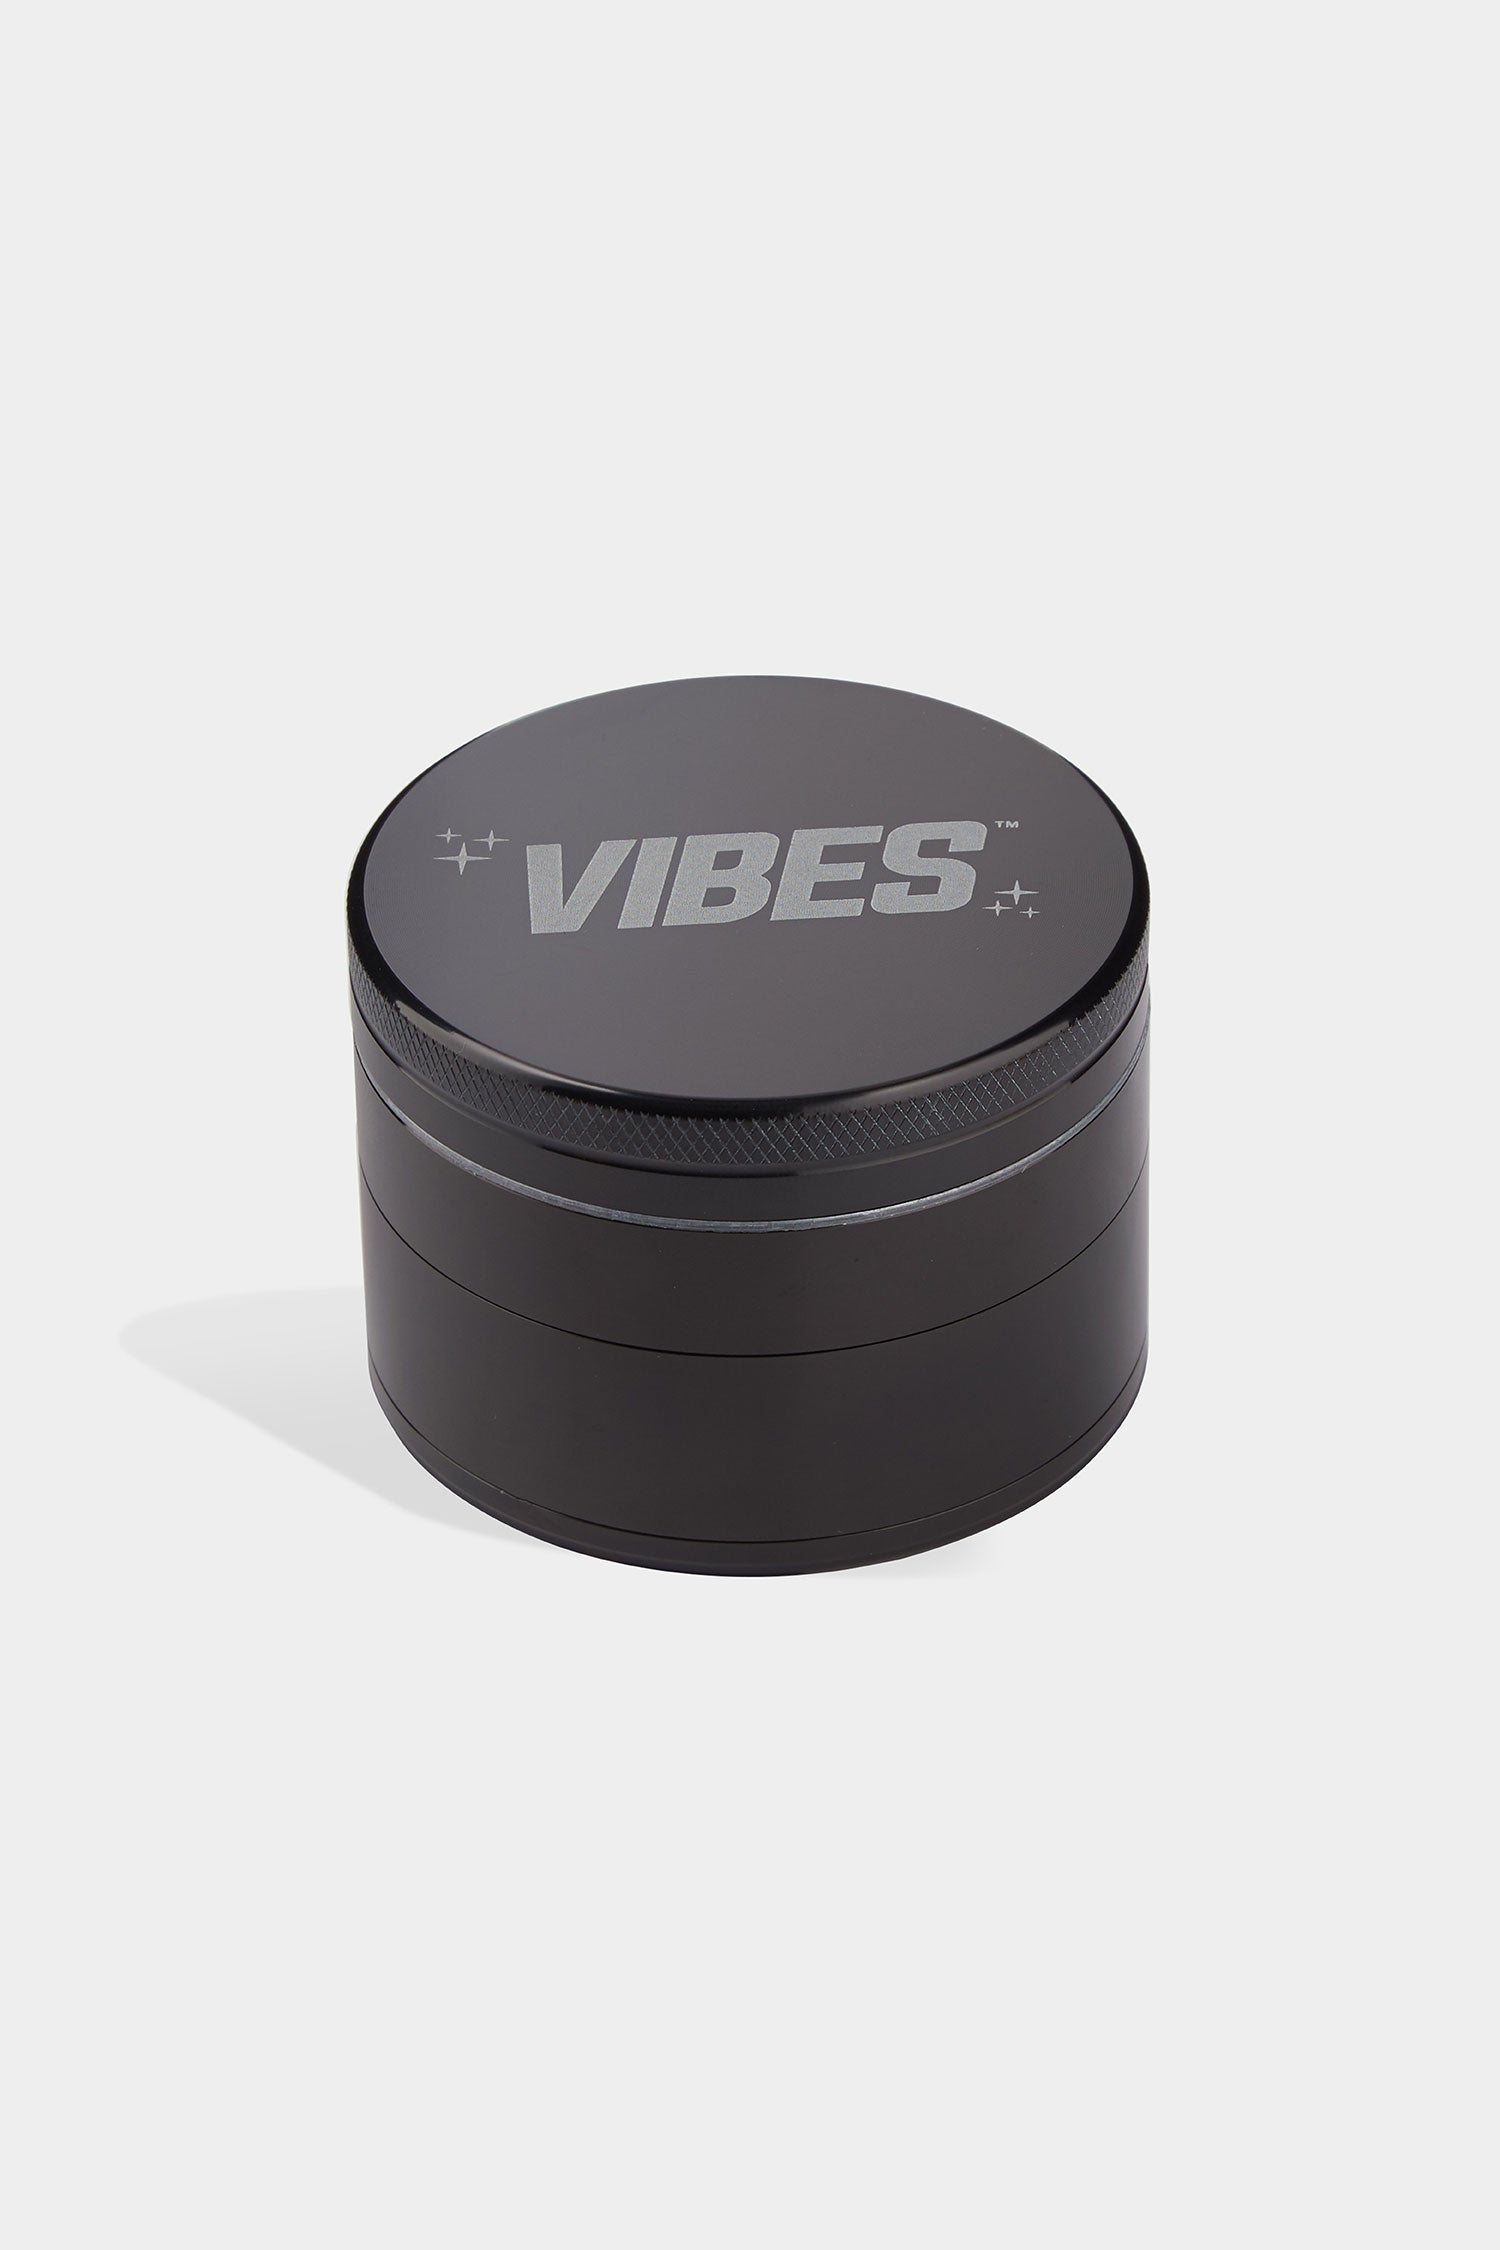 Vibes X Aerospaced 4-Piece Grinder